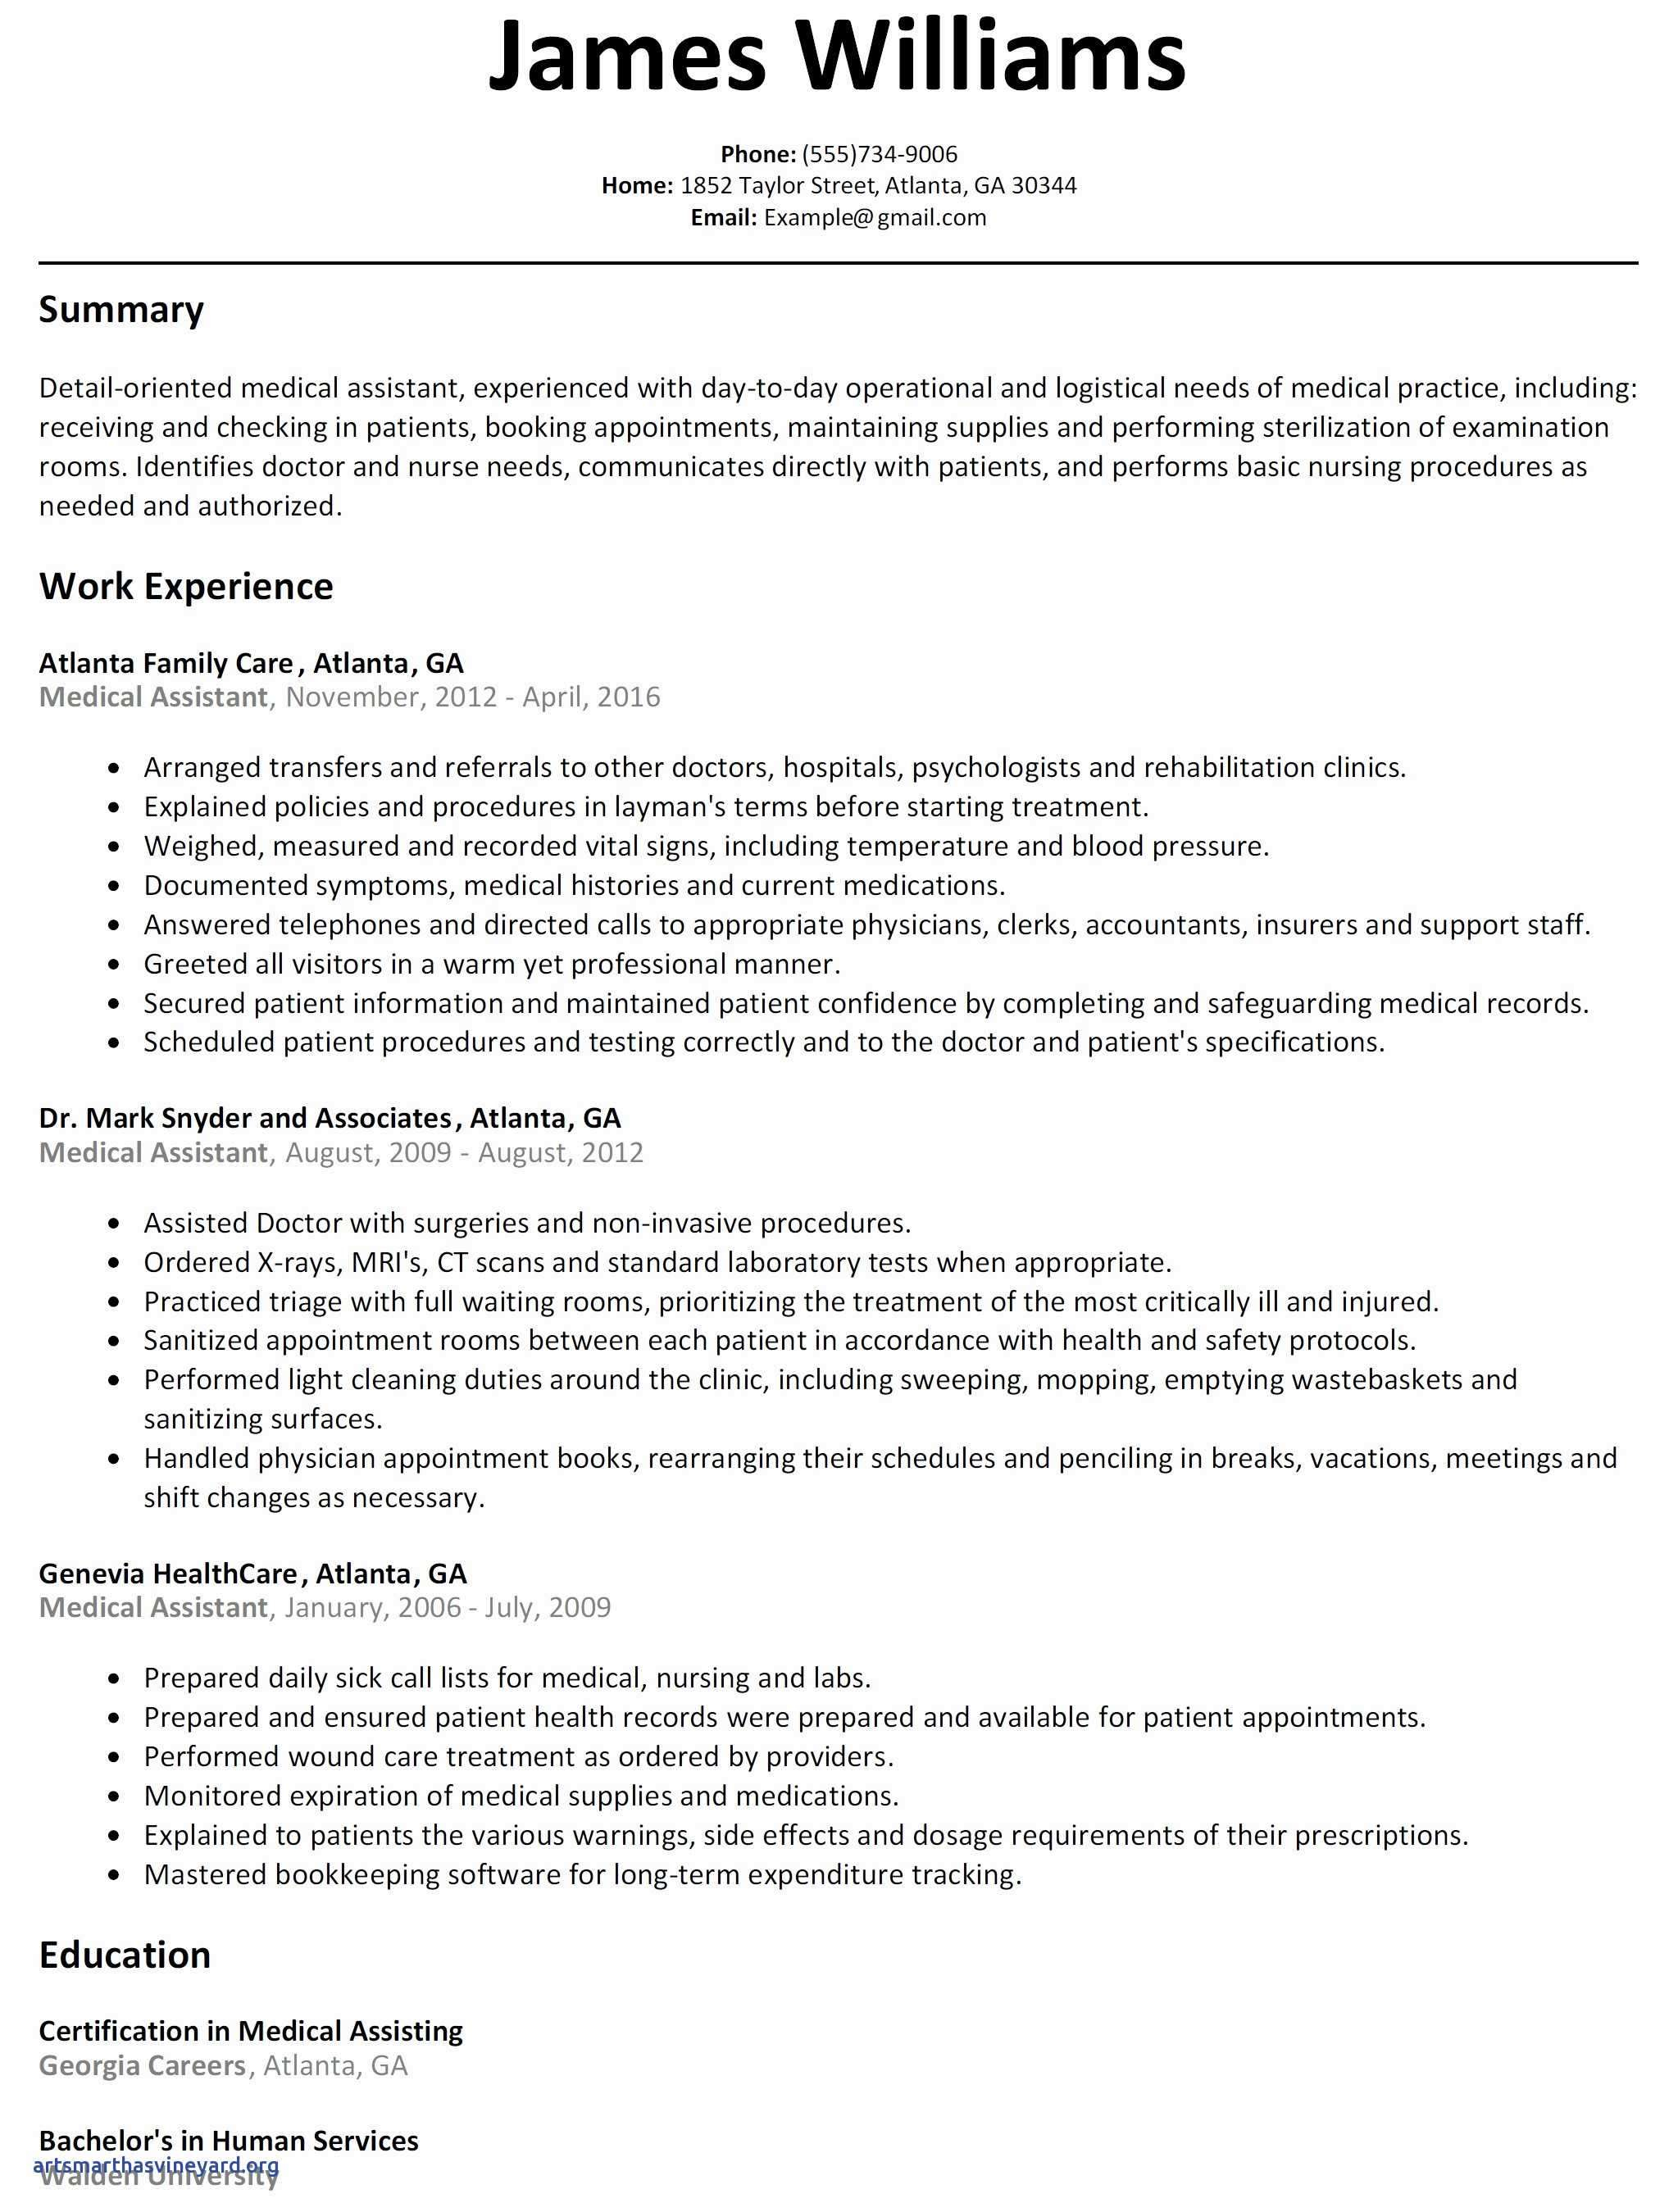 retail store manager resume template example-Retail Store Manager Resume Sample Unique Retail Resume Sample Awesome Resume Template Free Word New Od 12-d